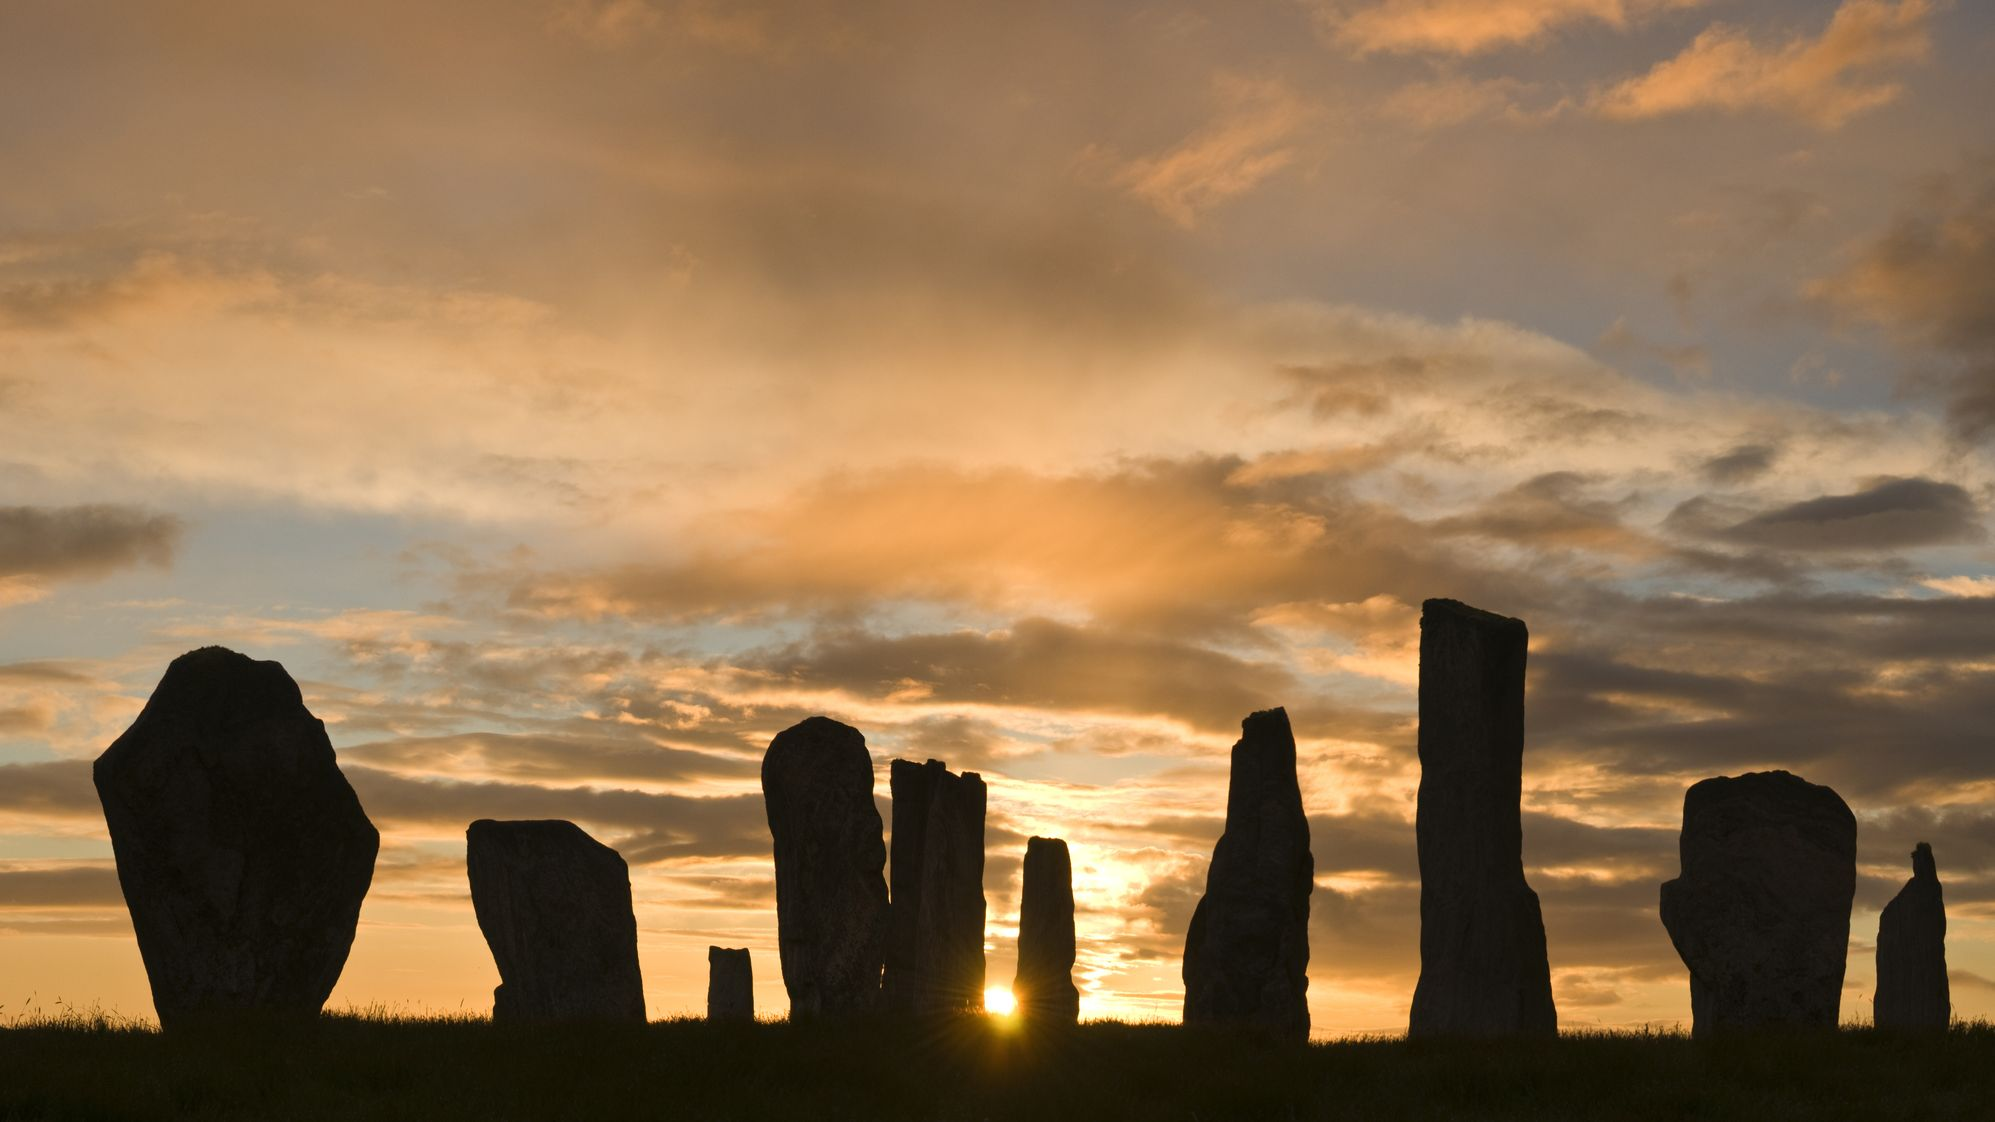 15 Facts About the Summer Solstice | Mental Floss